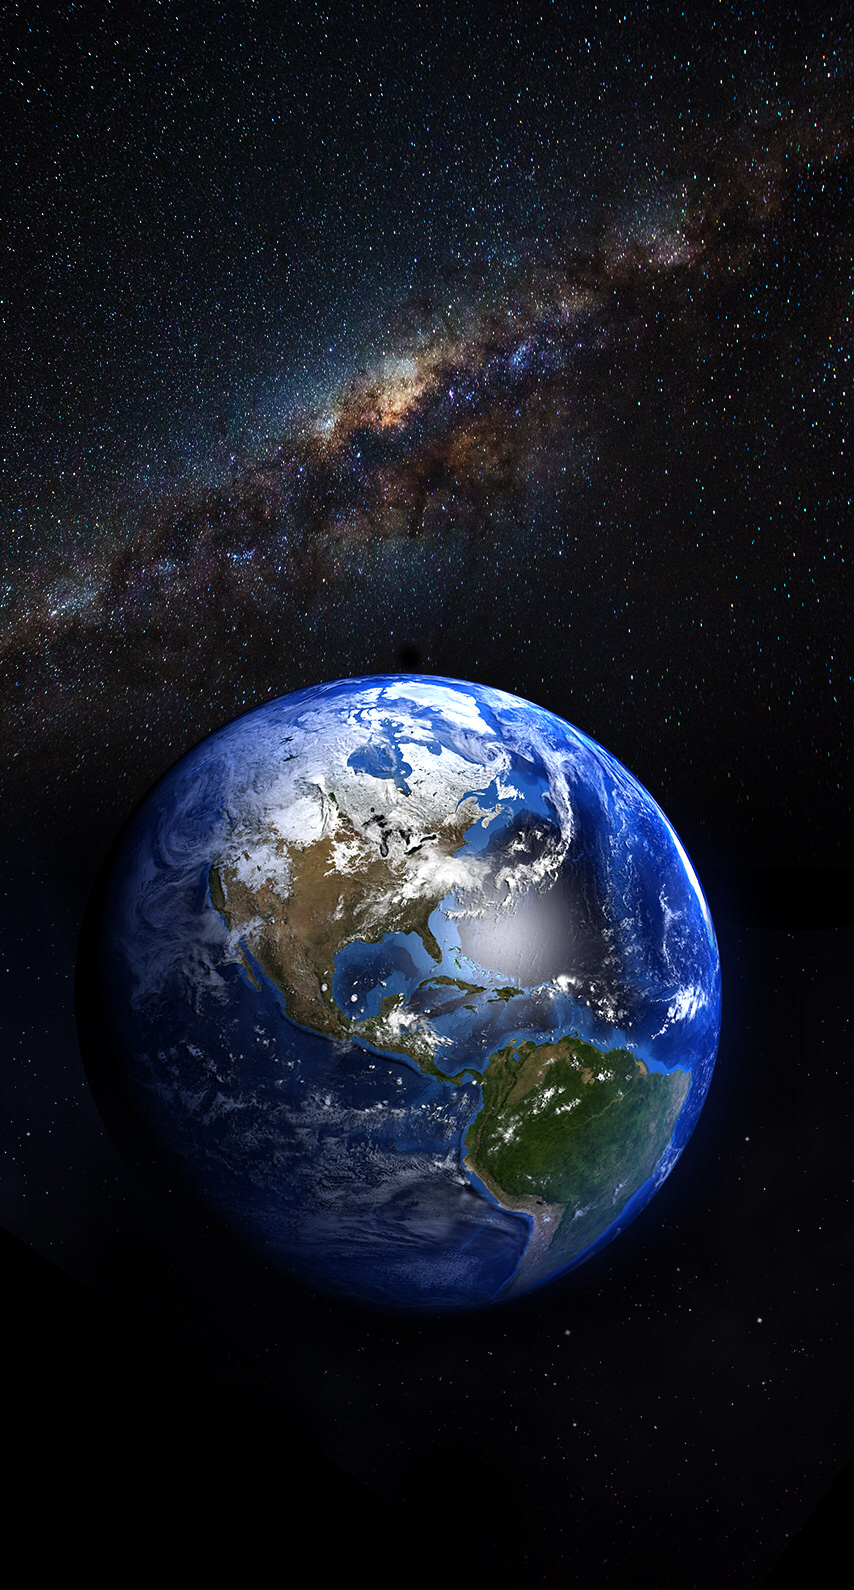 Earth Wallpaper Iphone Wallpaper Earth Earth From Space Planets Wallpaper